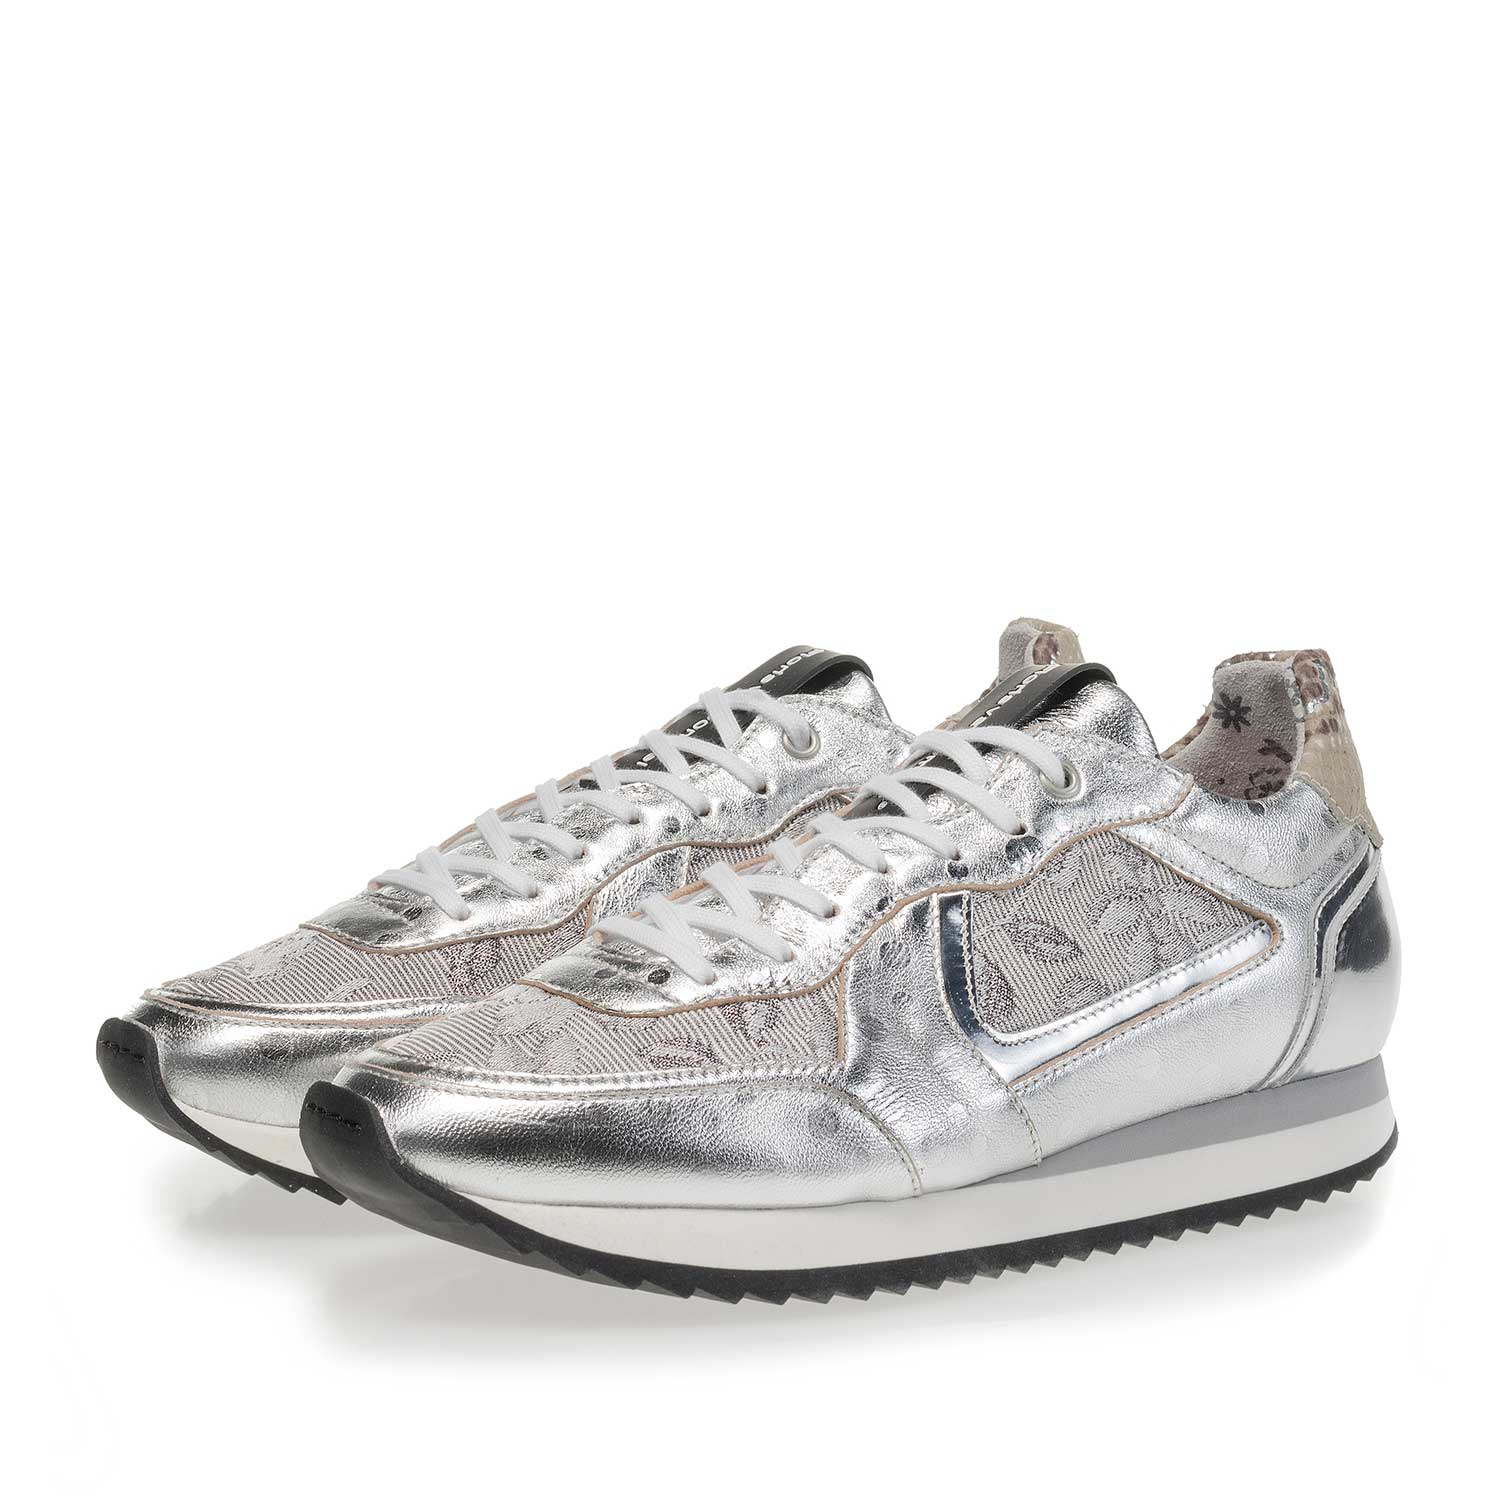 85232/01 - Silver-coloured leather sneaker